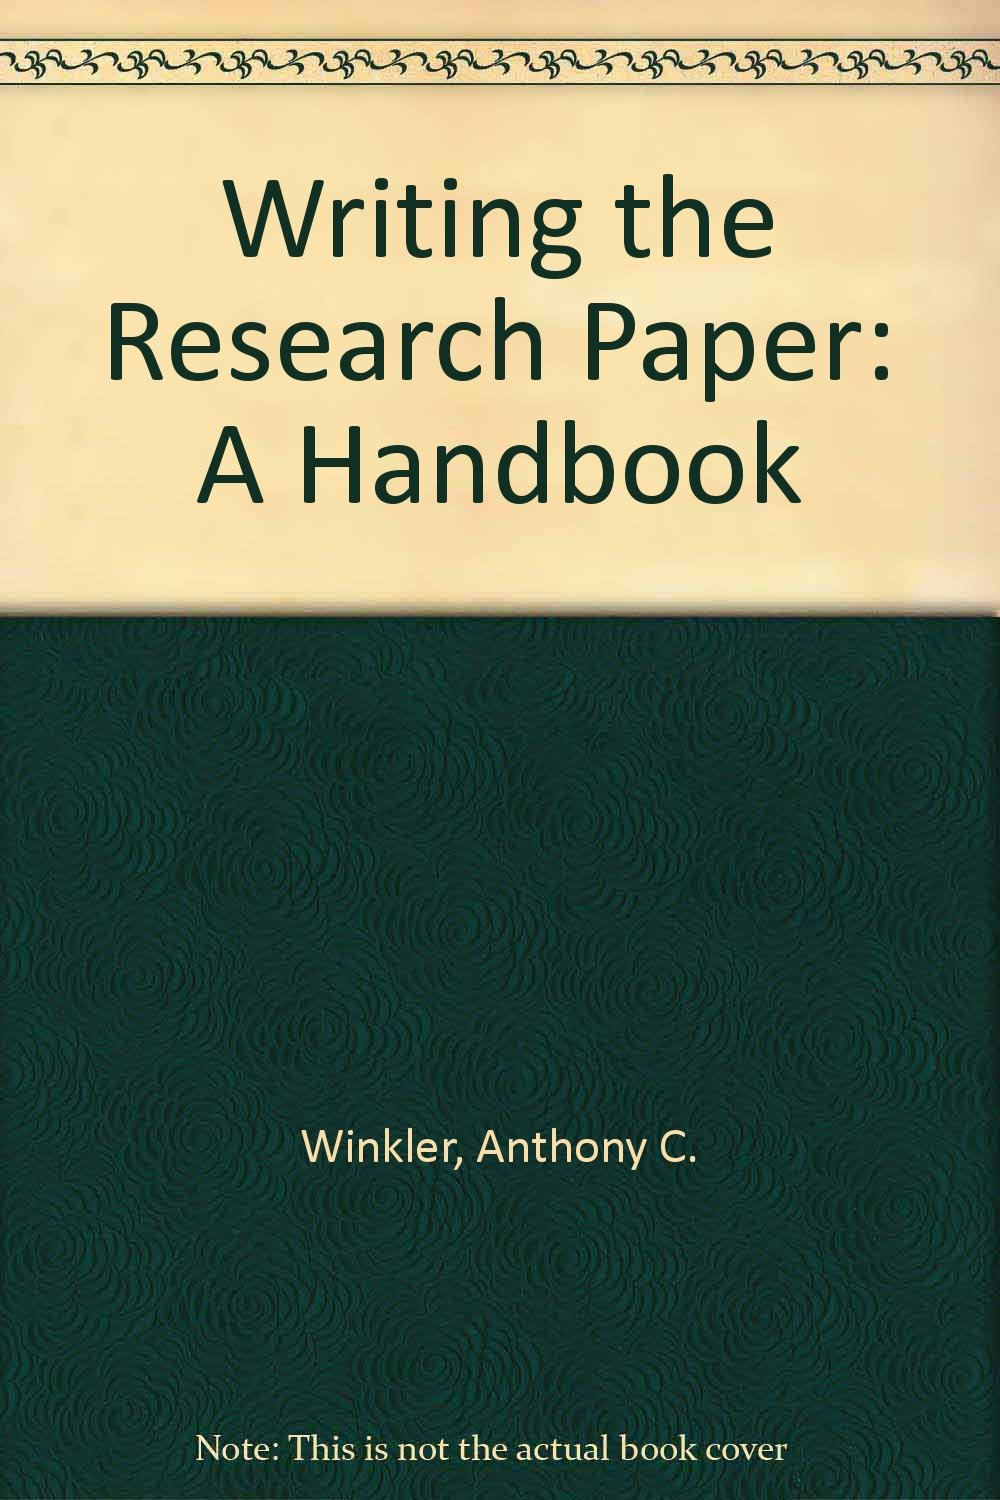 001 Research Paper 71n0iwptm6l Writing The Wonderful A Handbook 8th Edition Full